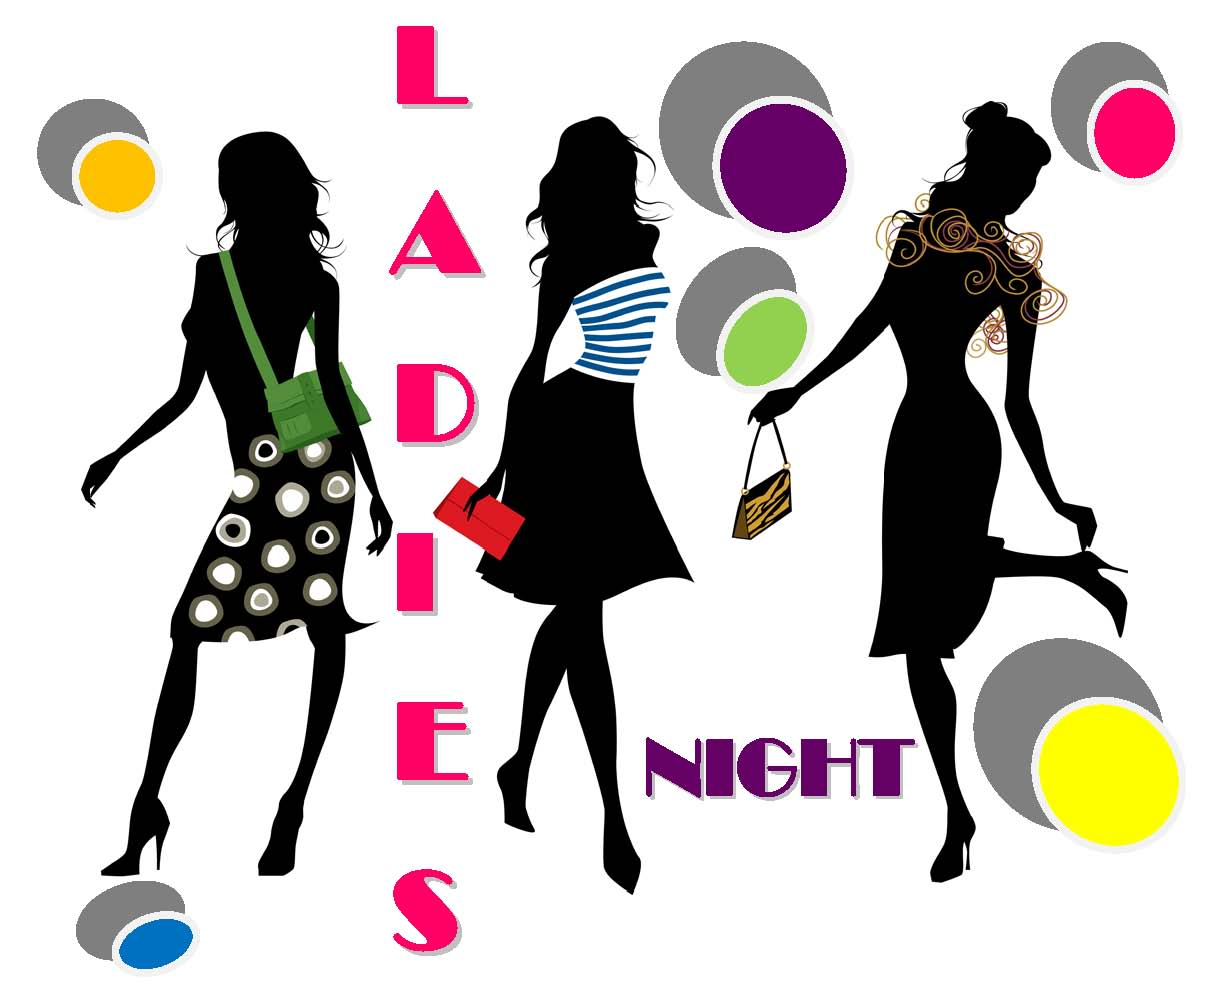 Night party clipart png royalty free library Free Ladies Night Cliparts, Download Free Clip Art, Free Clip Art on ... png royalty free library